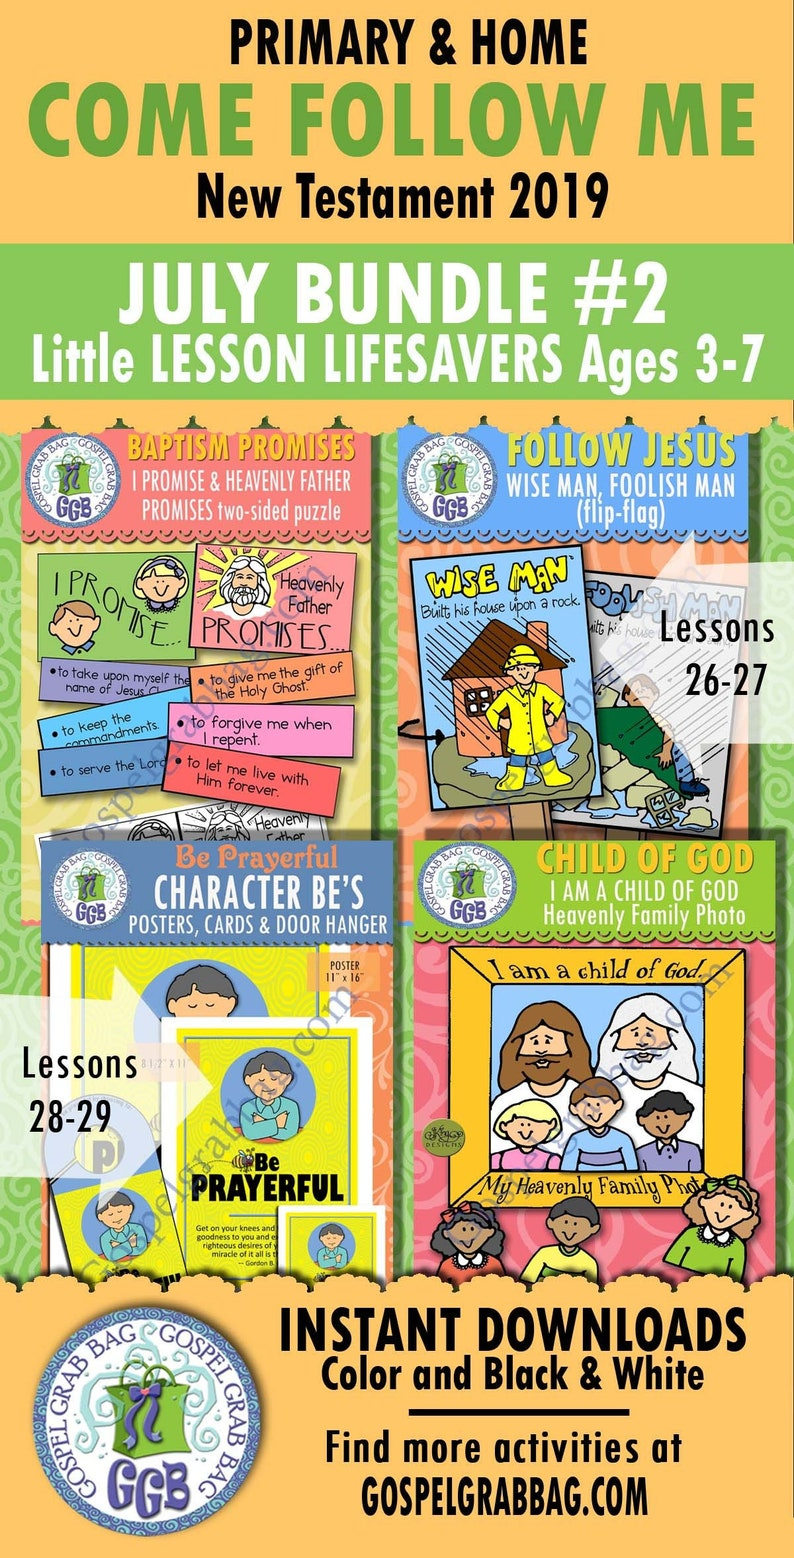 2019 JULY Ages 3-7 Come Follow Me Lesson 26-29 Bundle 2 Primary-Home  ACTIVITIES: promises puzzle, wise man flag, Be prayerful, Child poster